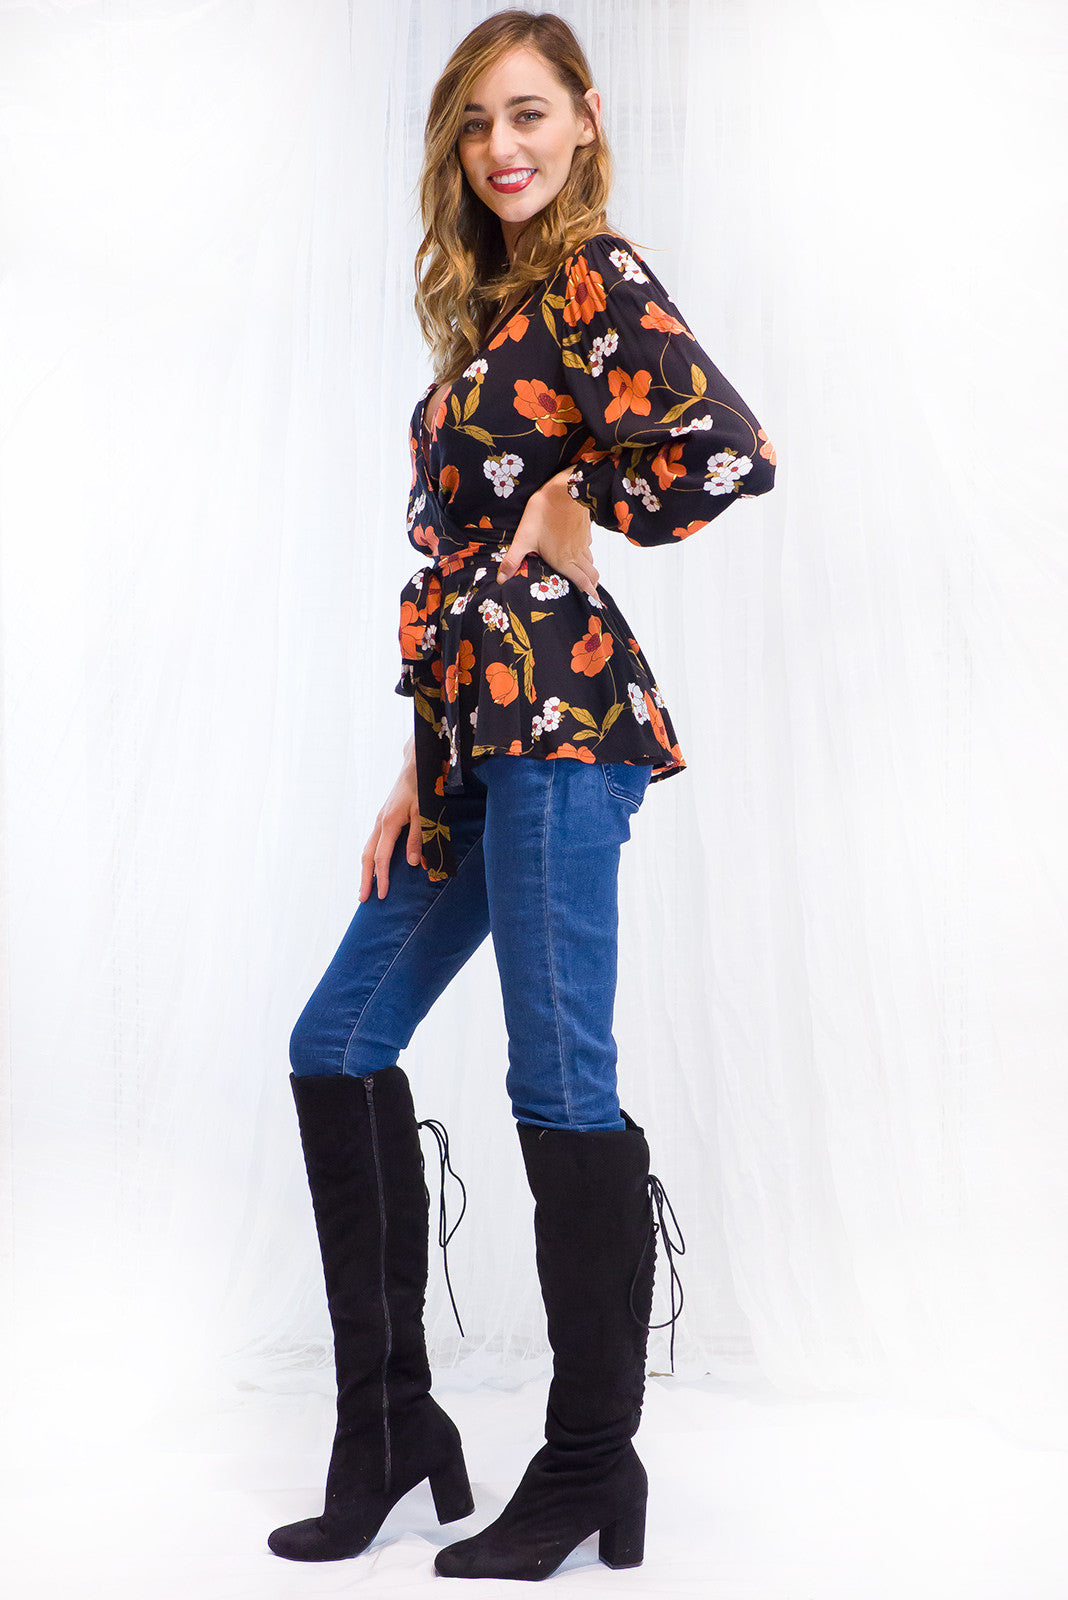 Petra Night Poppy Black and Red Print Wrap Top